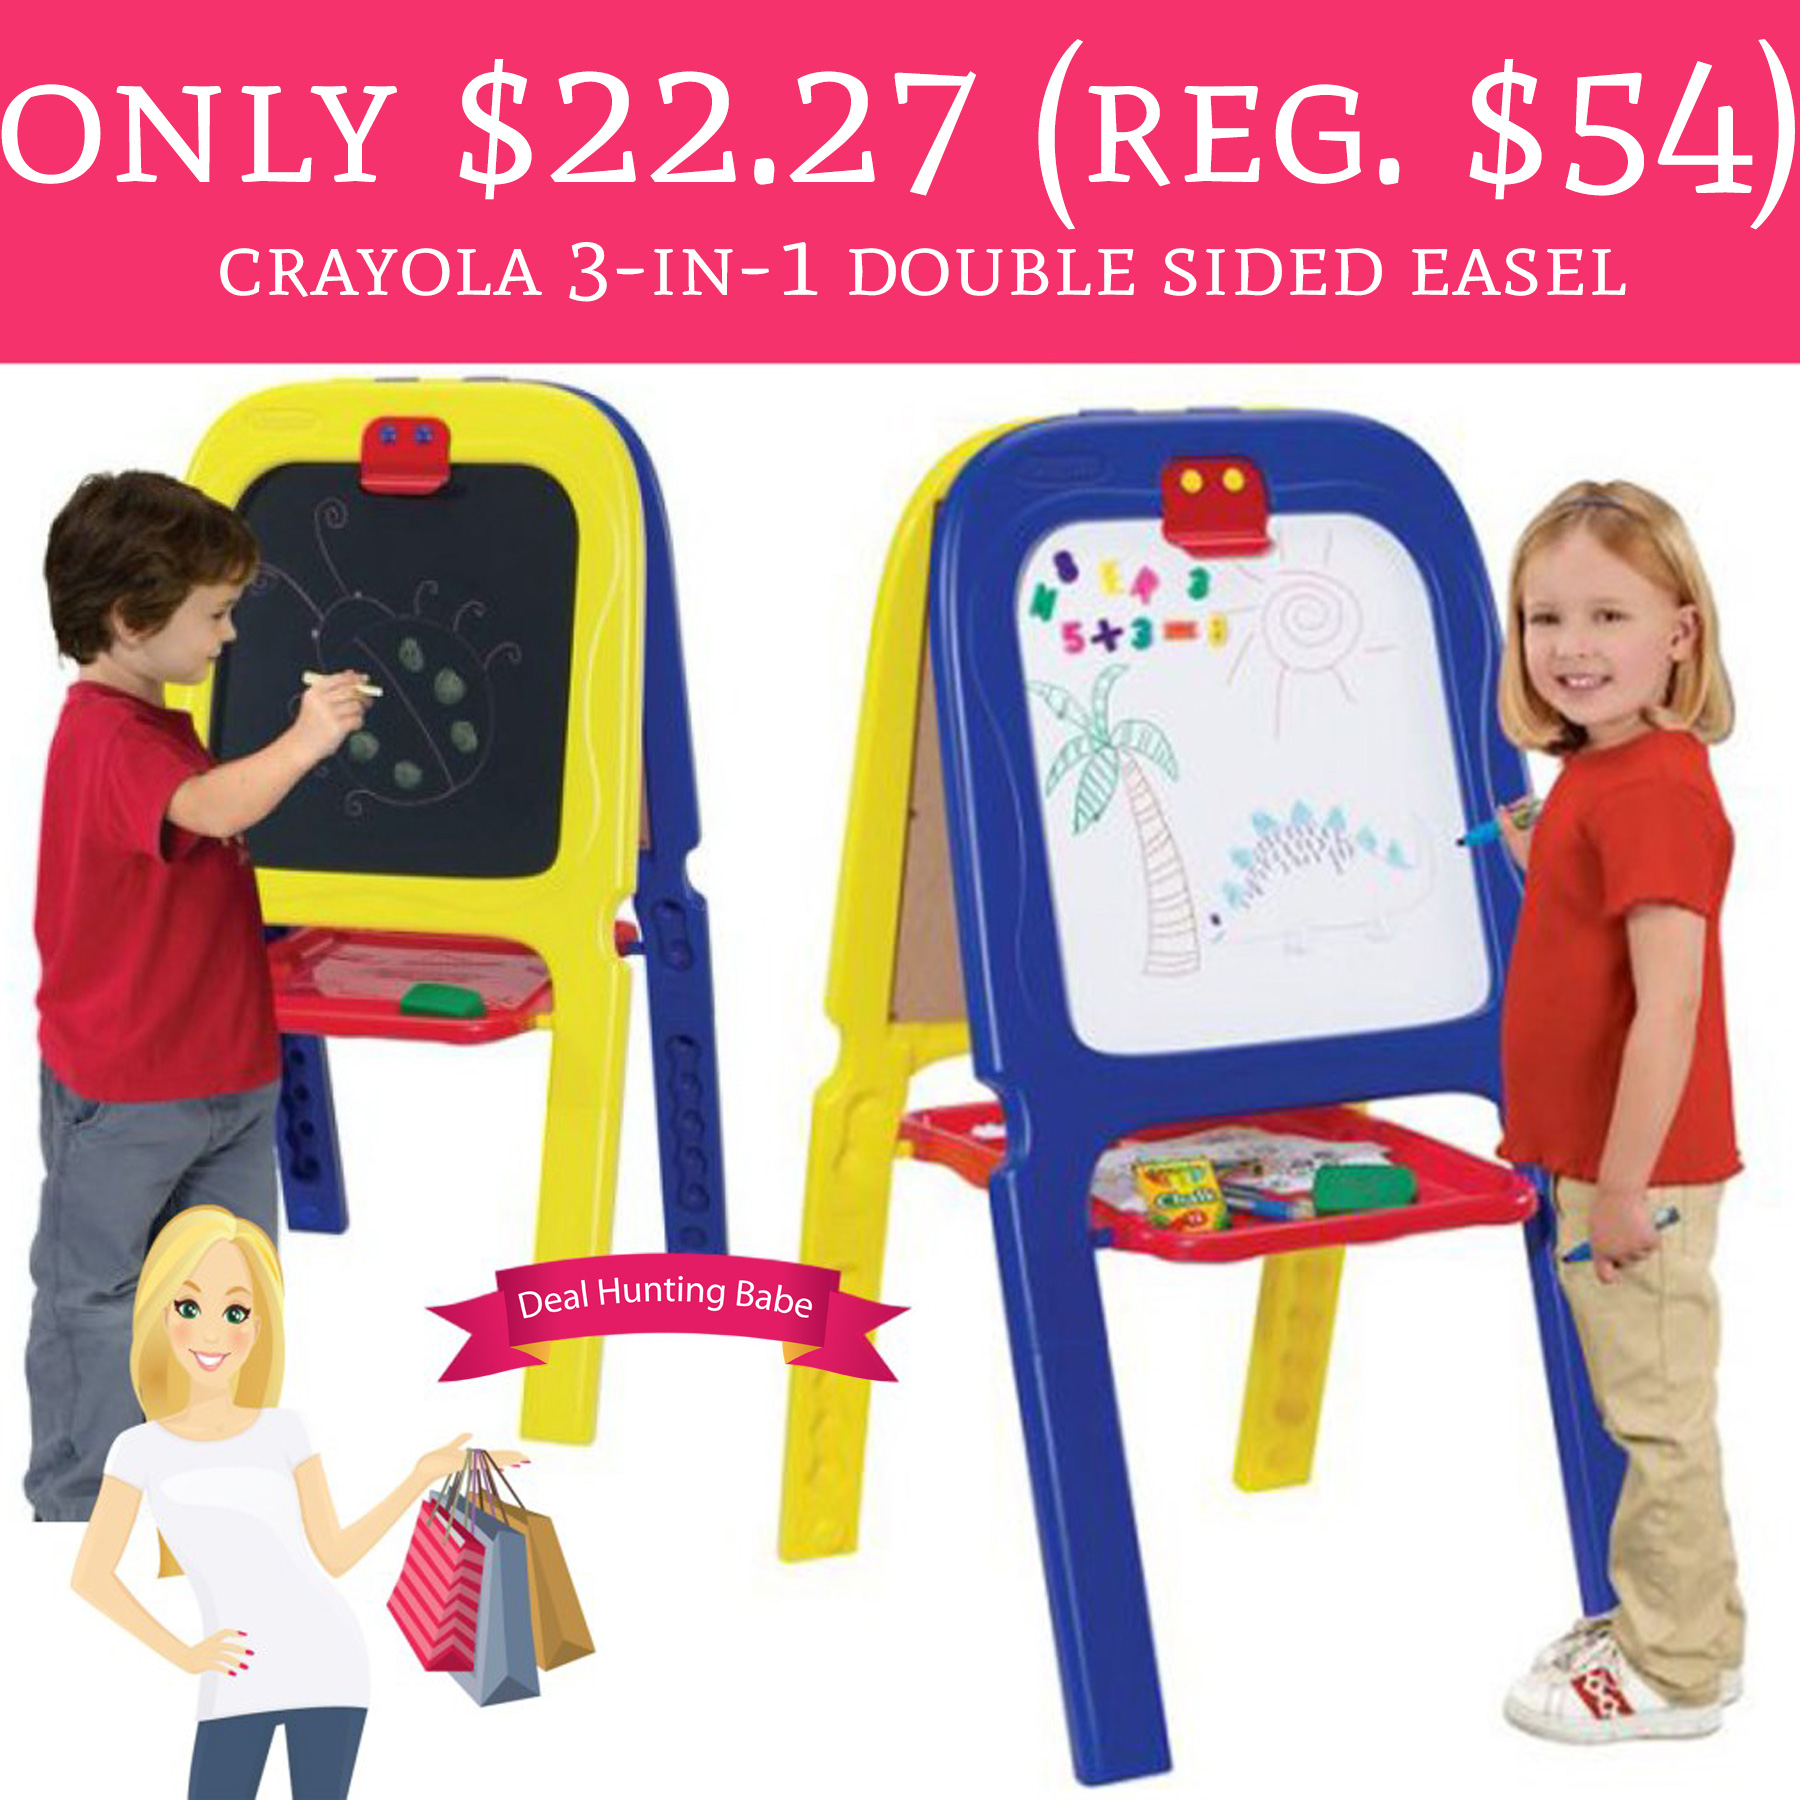 crayola 3 in 1 double easel with magnetic letters wow only 22 27 regular 54 crayola 3 in 1 sided 21223